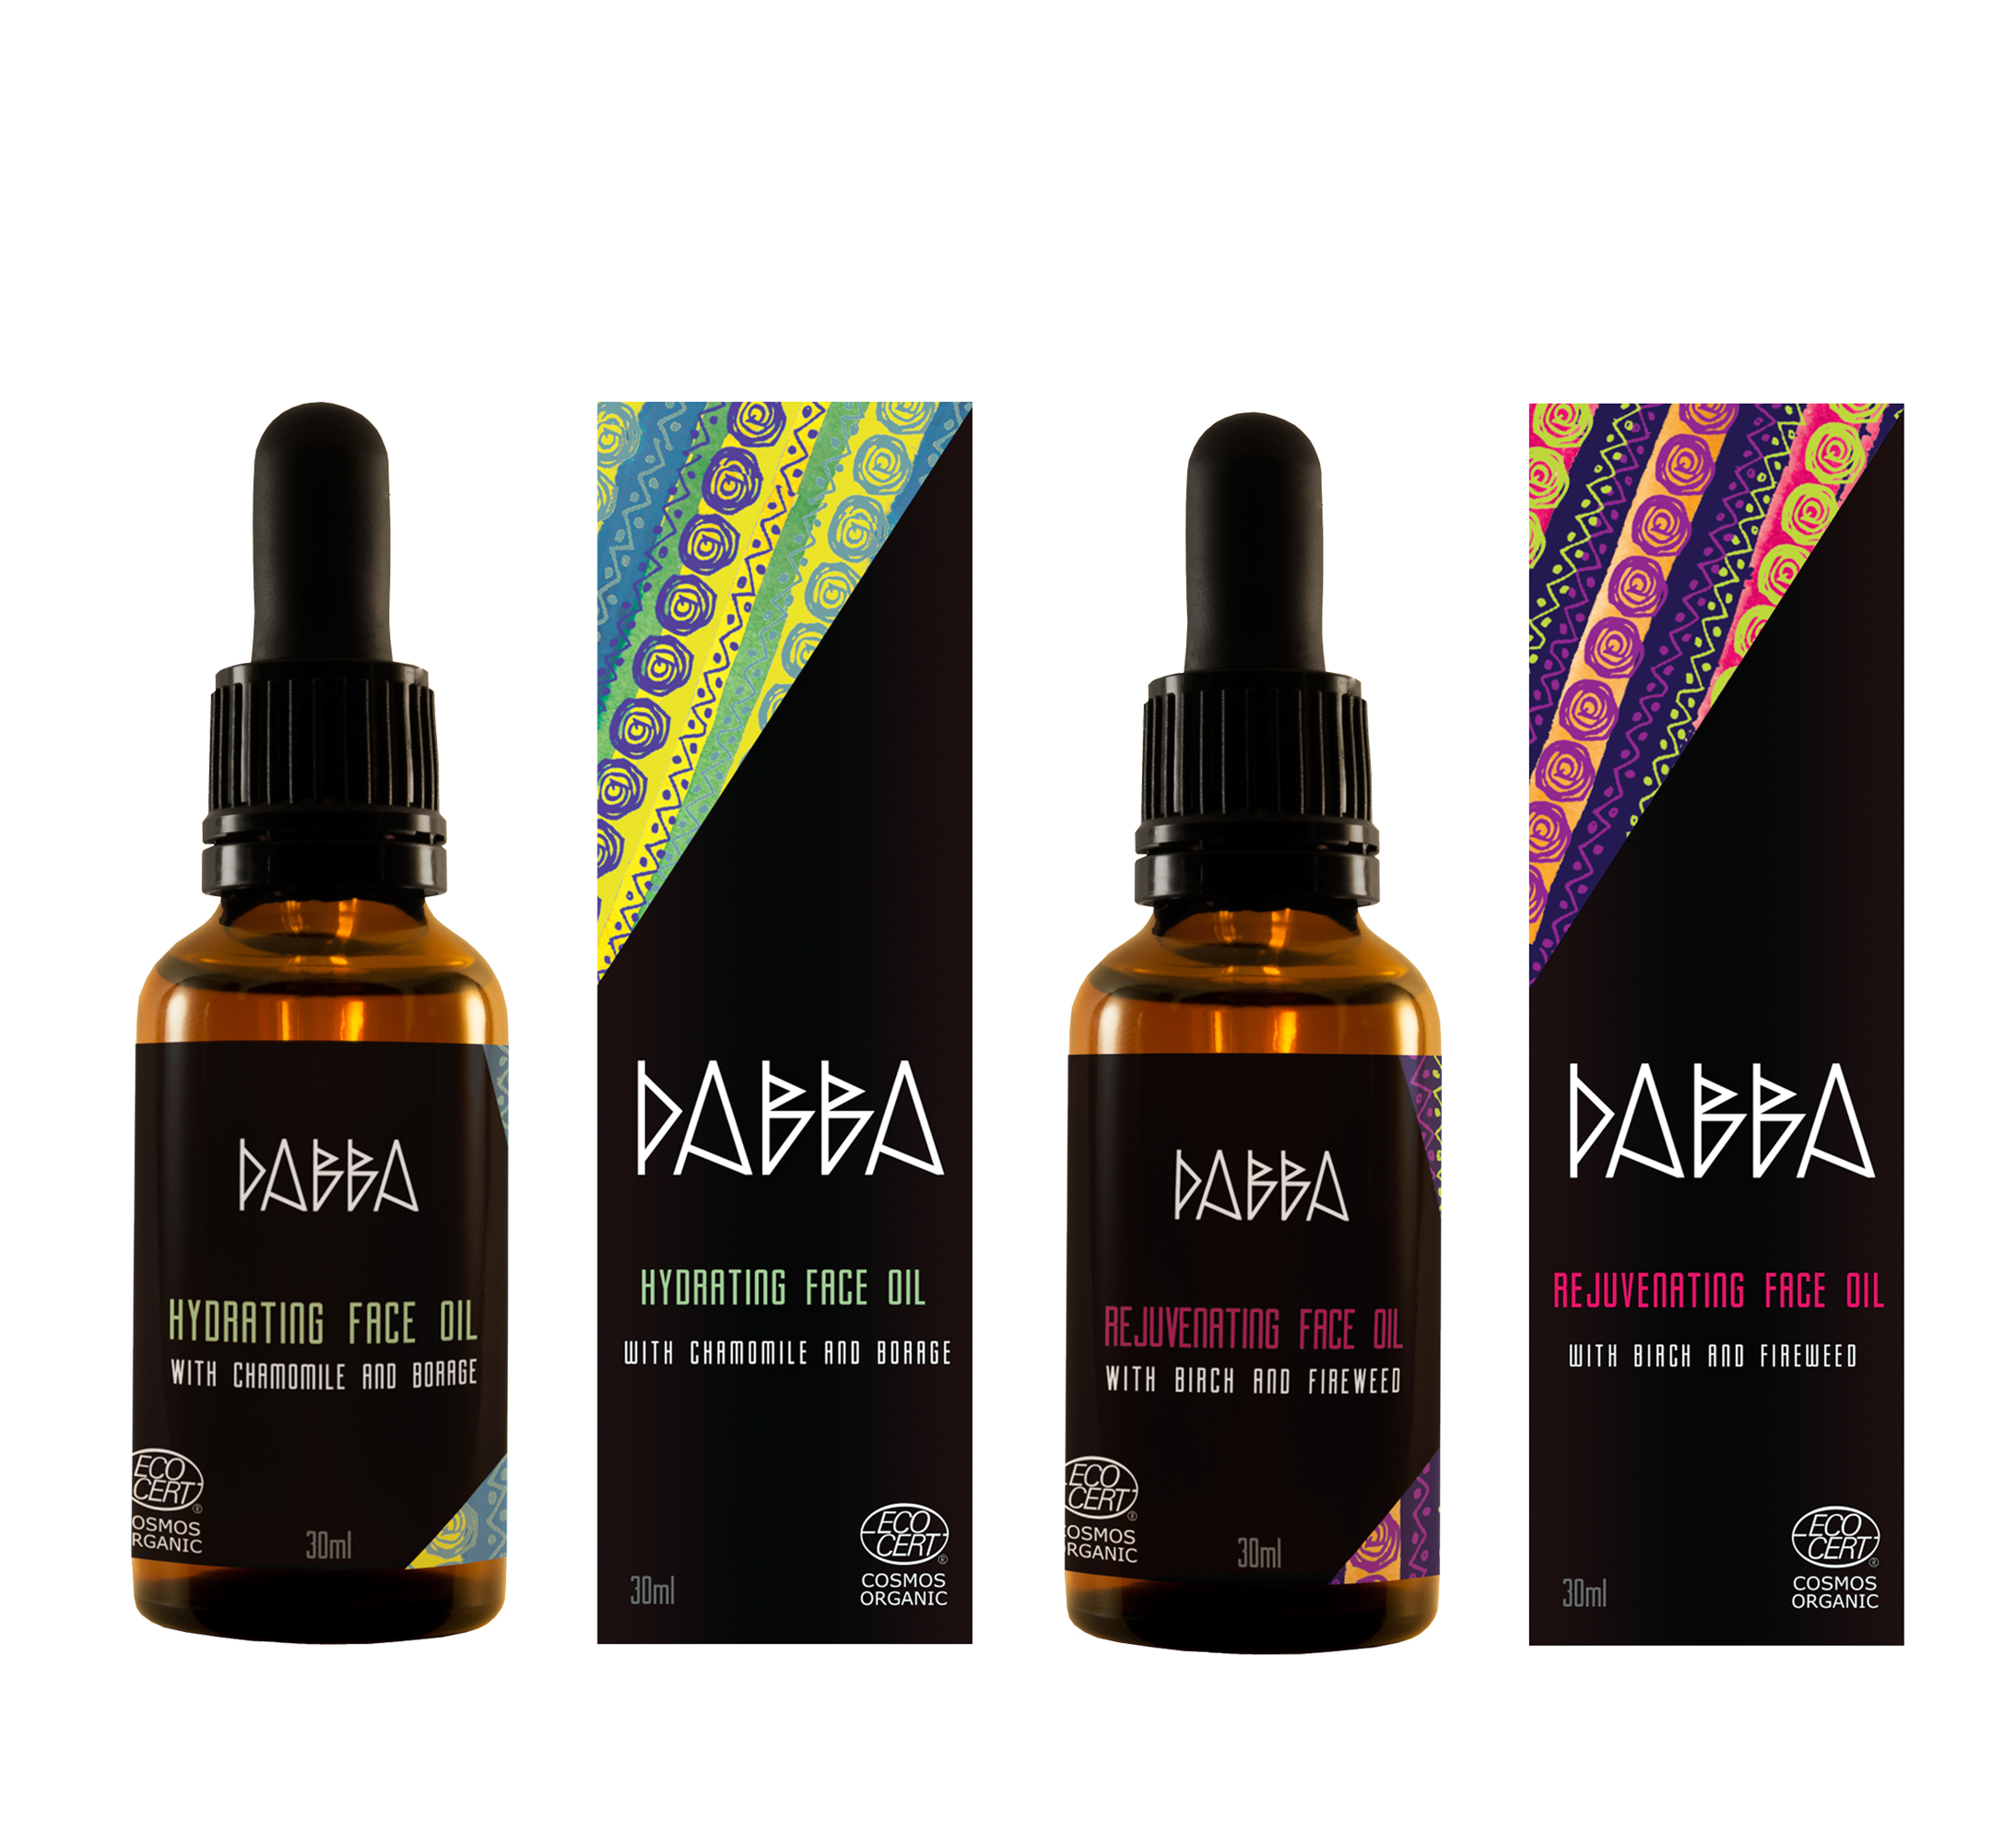 DABBA face oils collection, 2016.